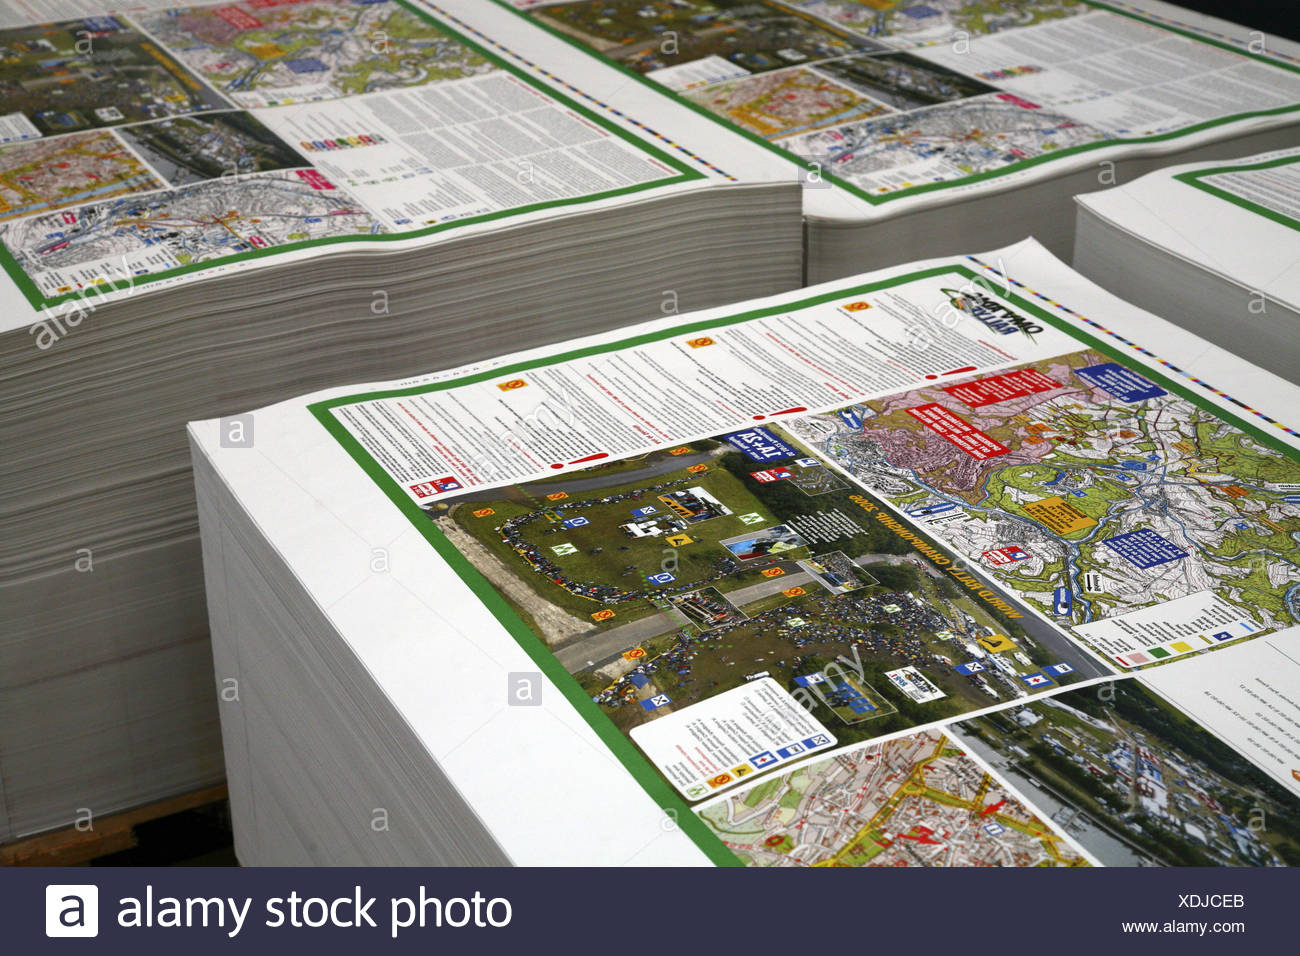 Printing work paper-stack economy prints industry offset printing work-product stack paper inter-storage indoors quietly life - Stock Image